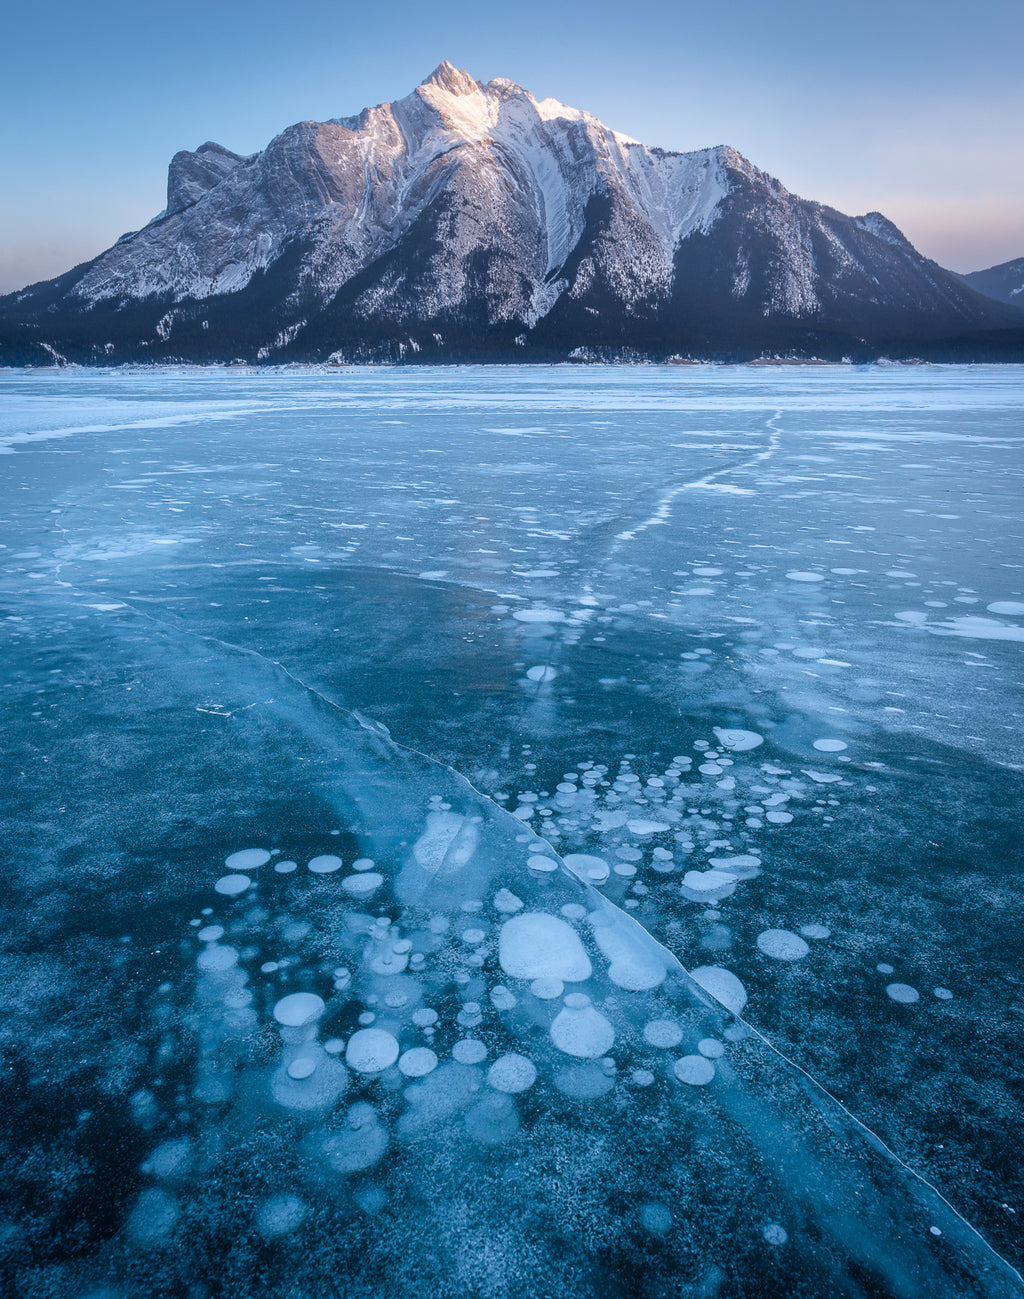 Methane bubbles frozen in Abraham Lake and Mount Michener during sunset